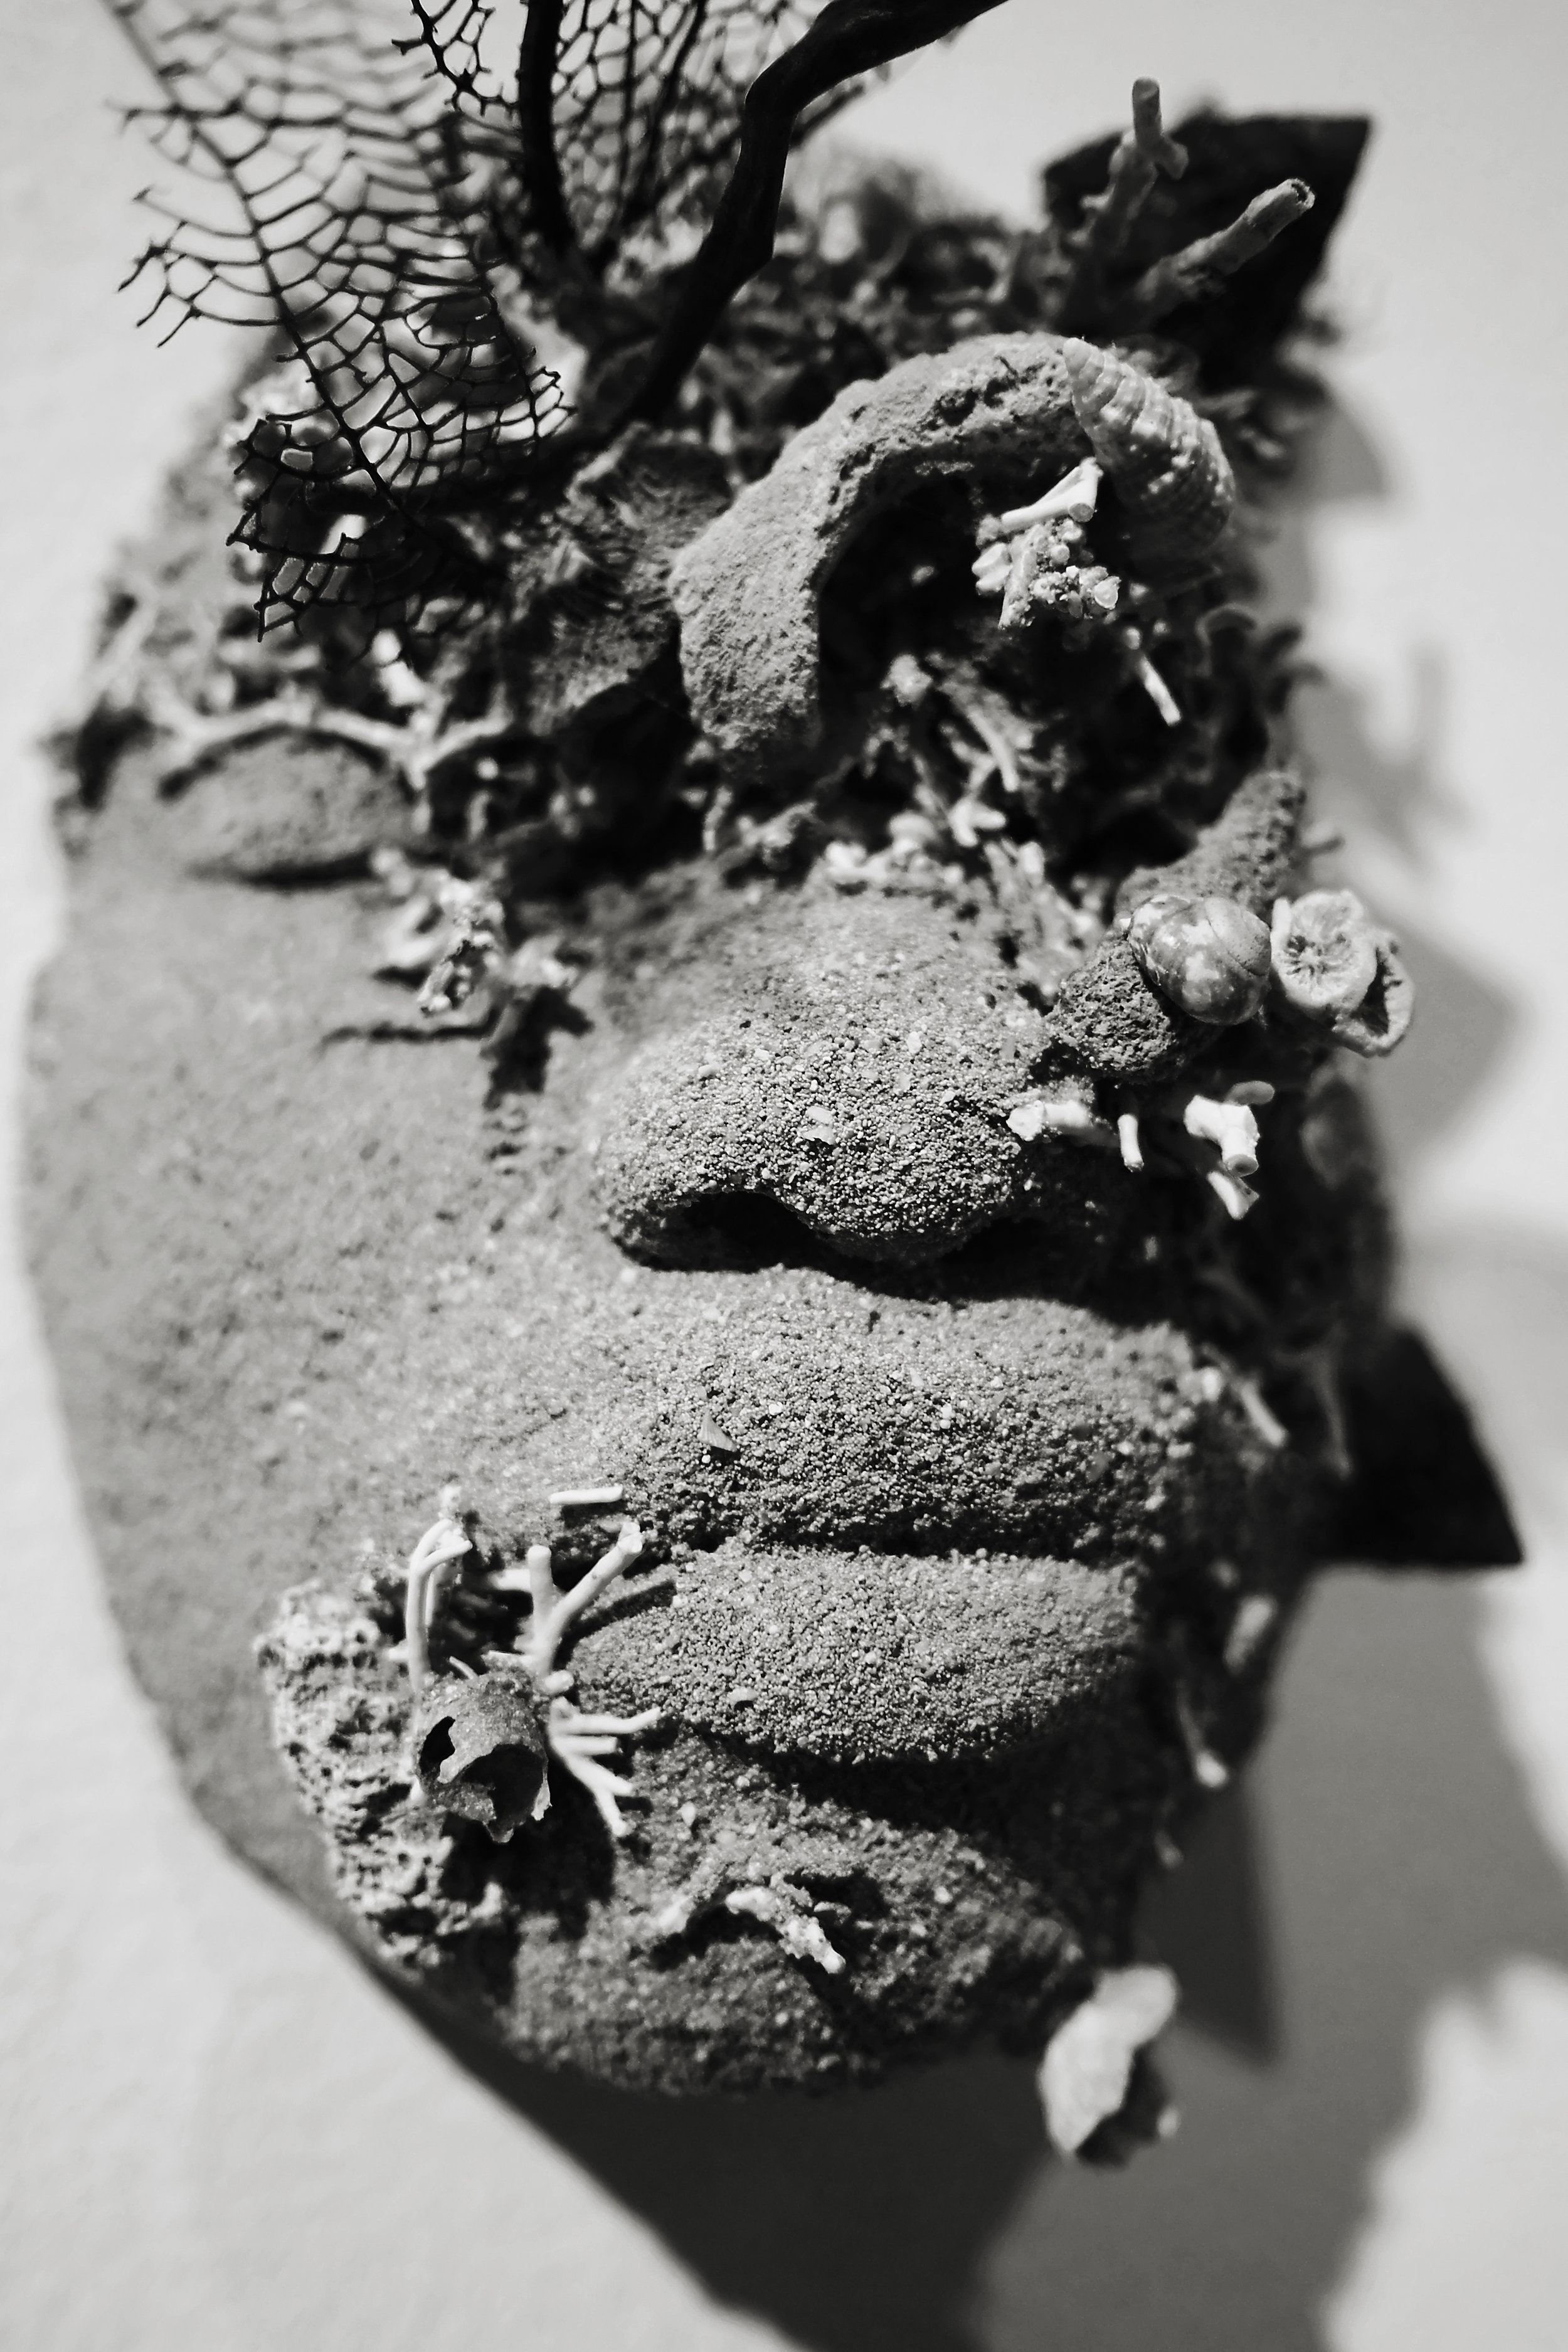 """Detail of Edrin Symonette's """"Island Life: The Ballad of Deangelo Johnson for Quakoo Street"""" as a part of Double Dutch, """"Of Skin and Sand"""" which opened on Friday, July 21st at the NAGB."""